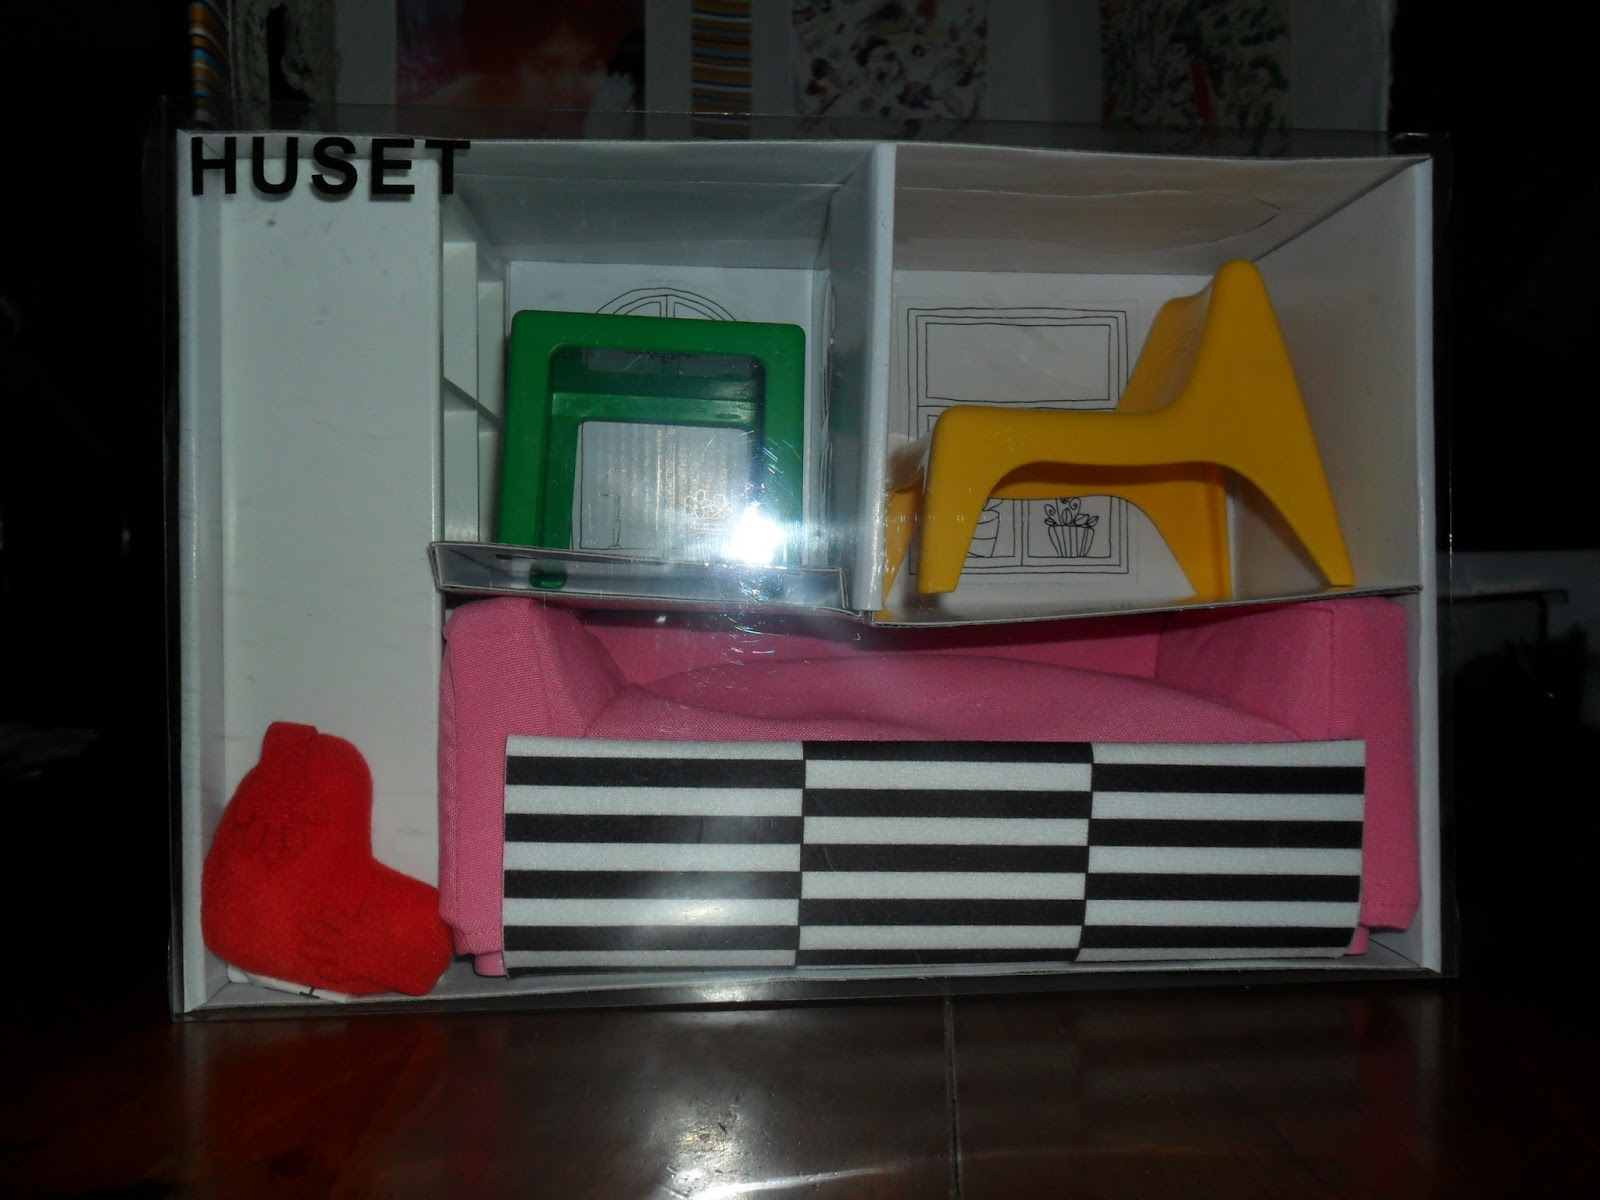 ikea dolls house furniture 3d printed my mini world finally got hands on the ikea huset dolls house furniture set yeah